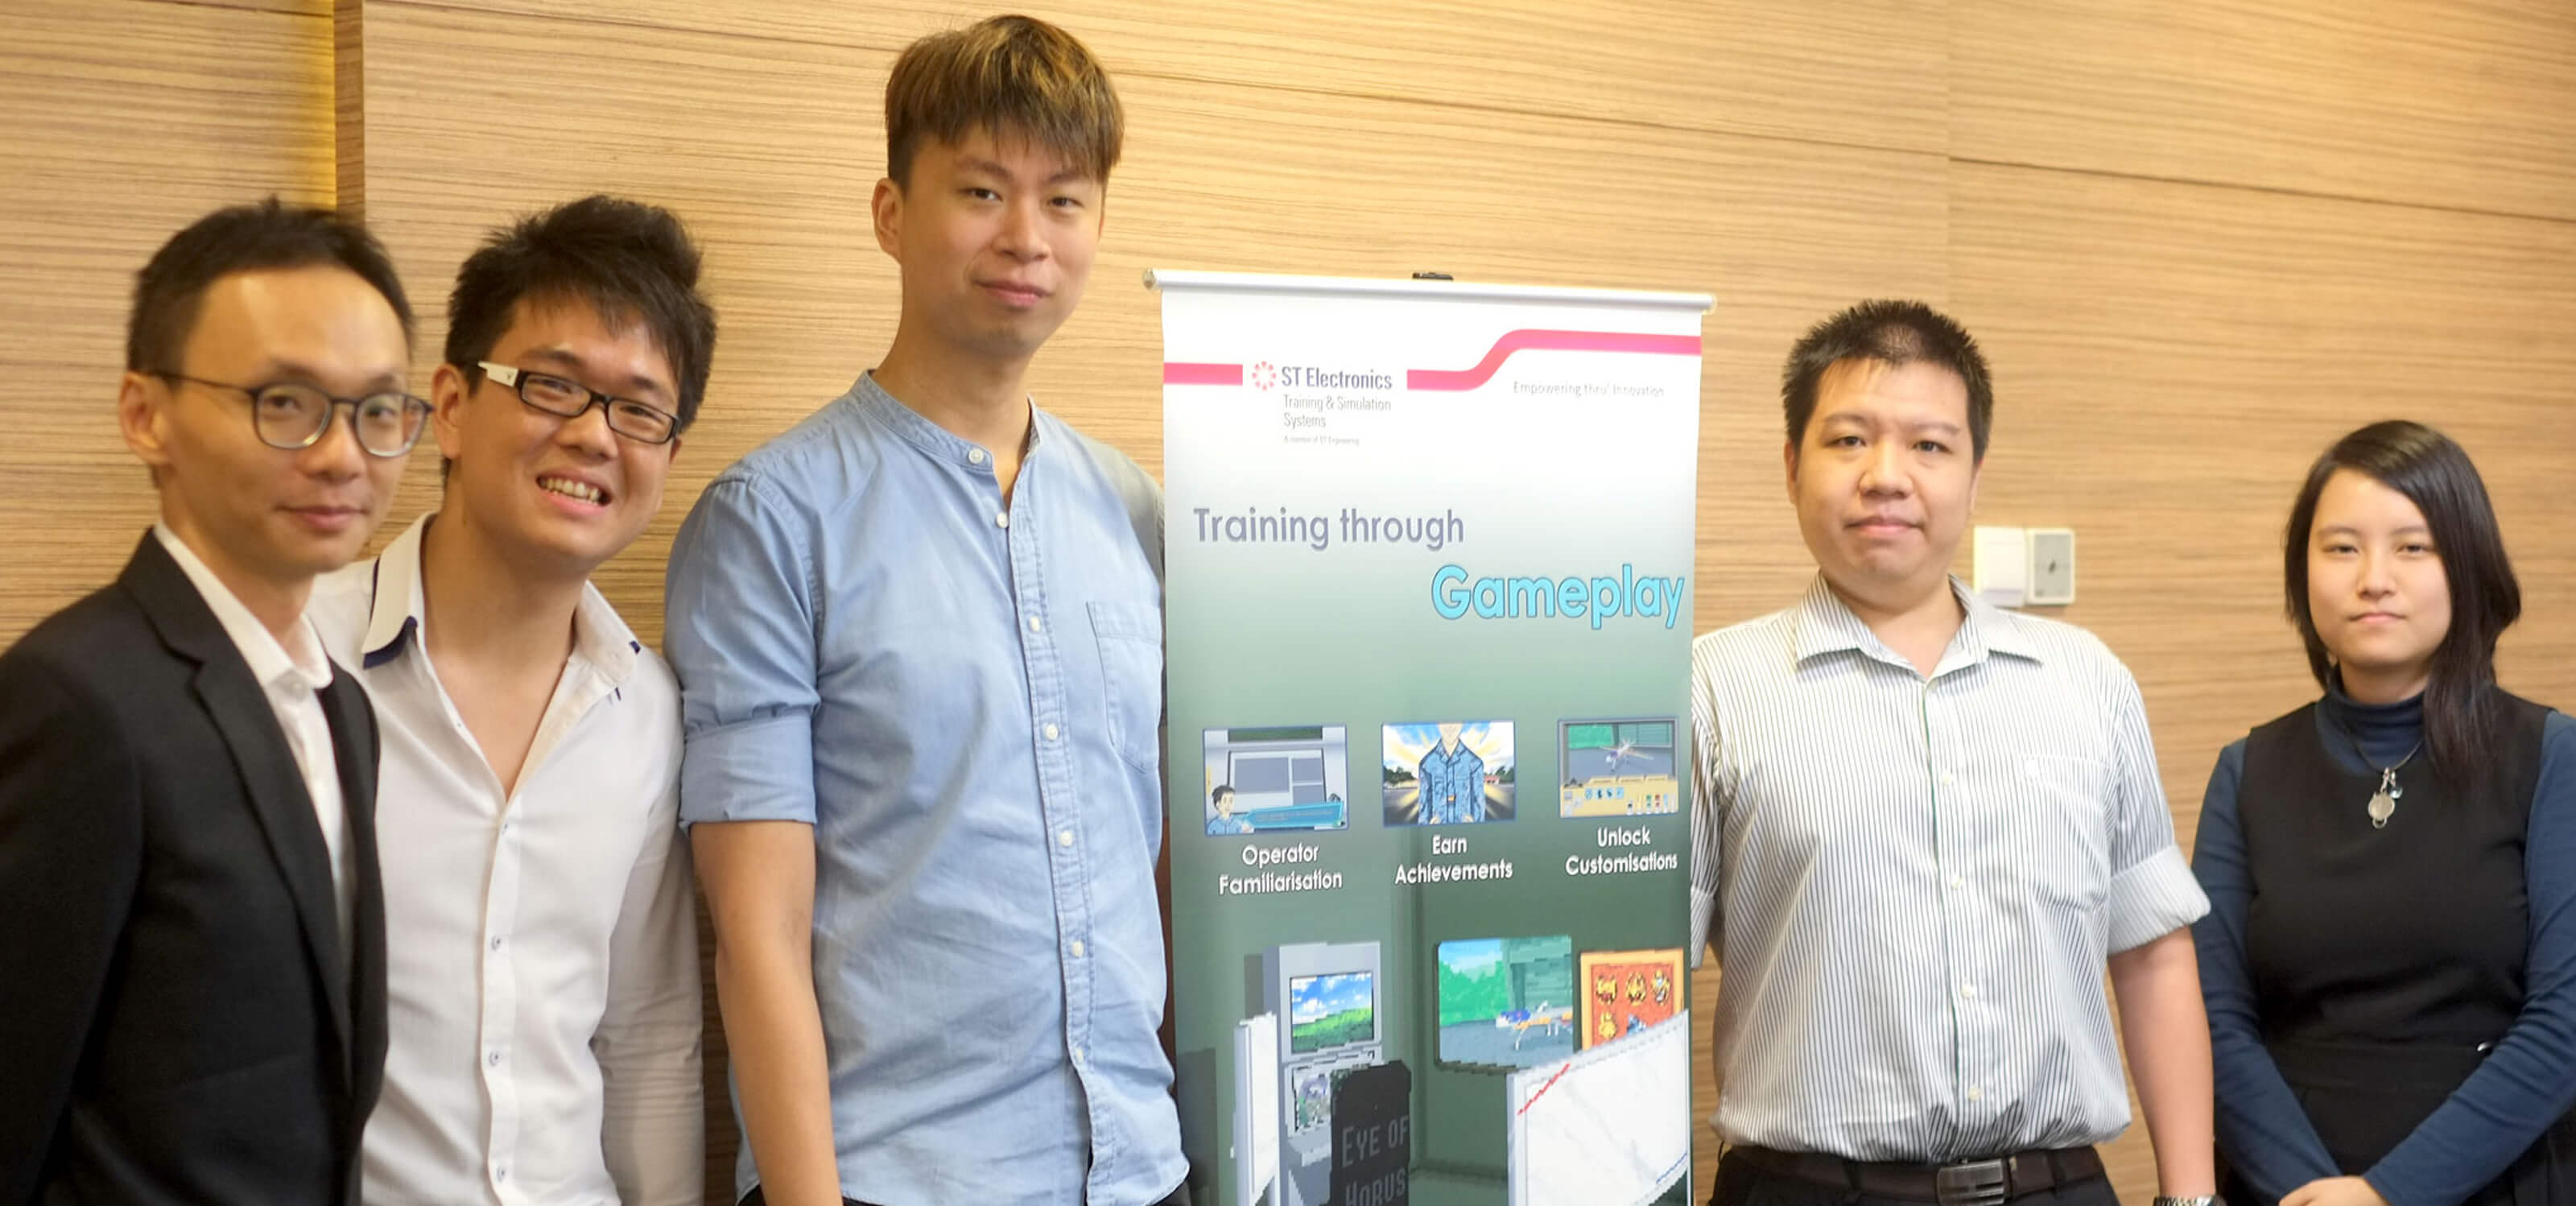 Team from ST Electronics poses for a photo with a vertical banner explaining a learning initiative using gameplay mechanics